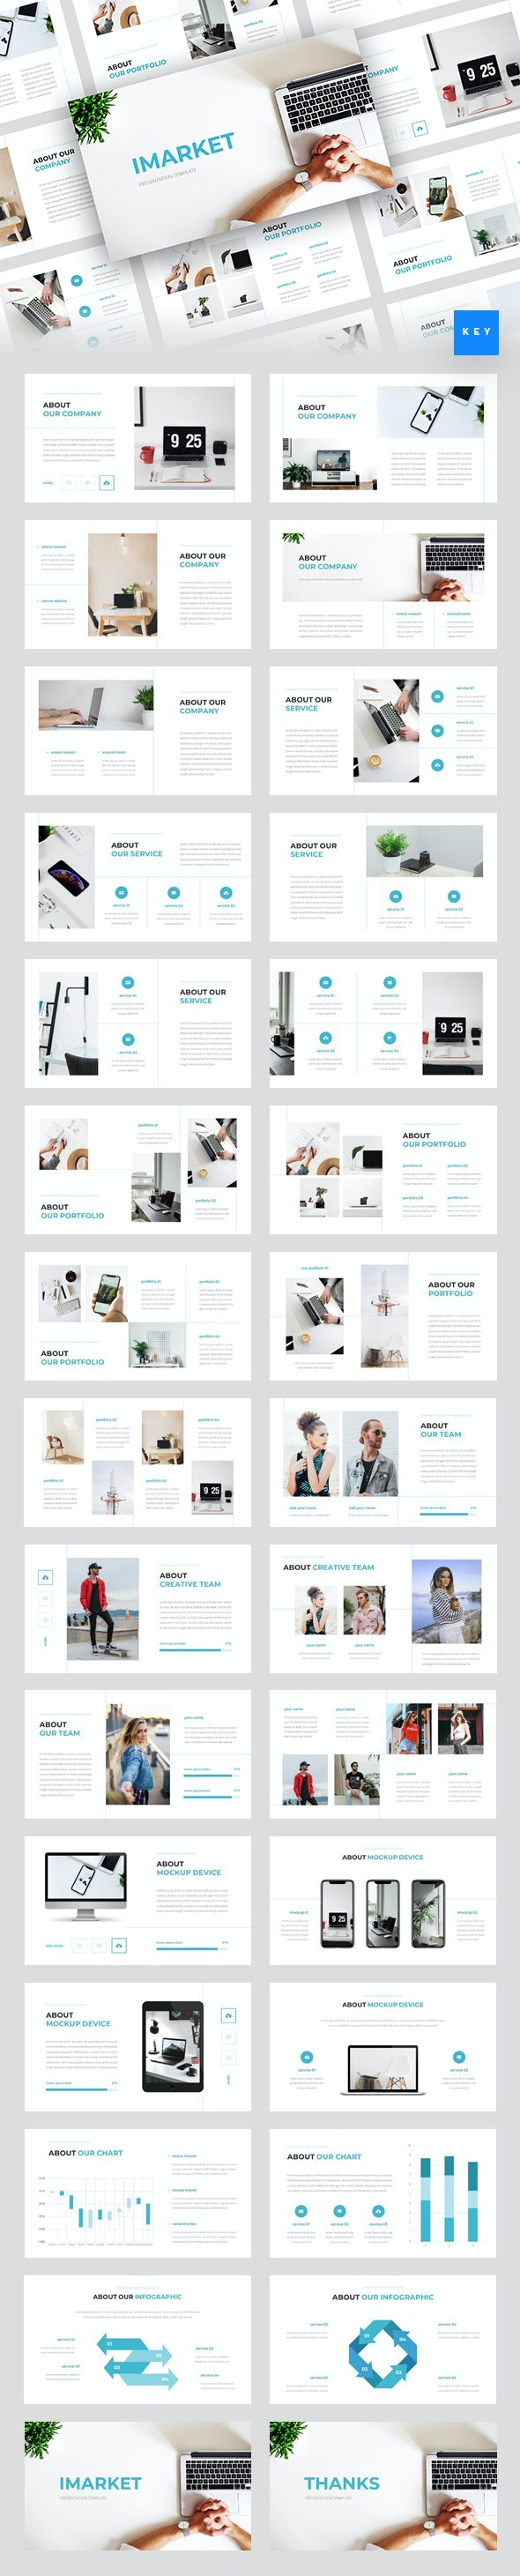 Imarket - Internet Marketing Keynote Template - Business Keynote Templates